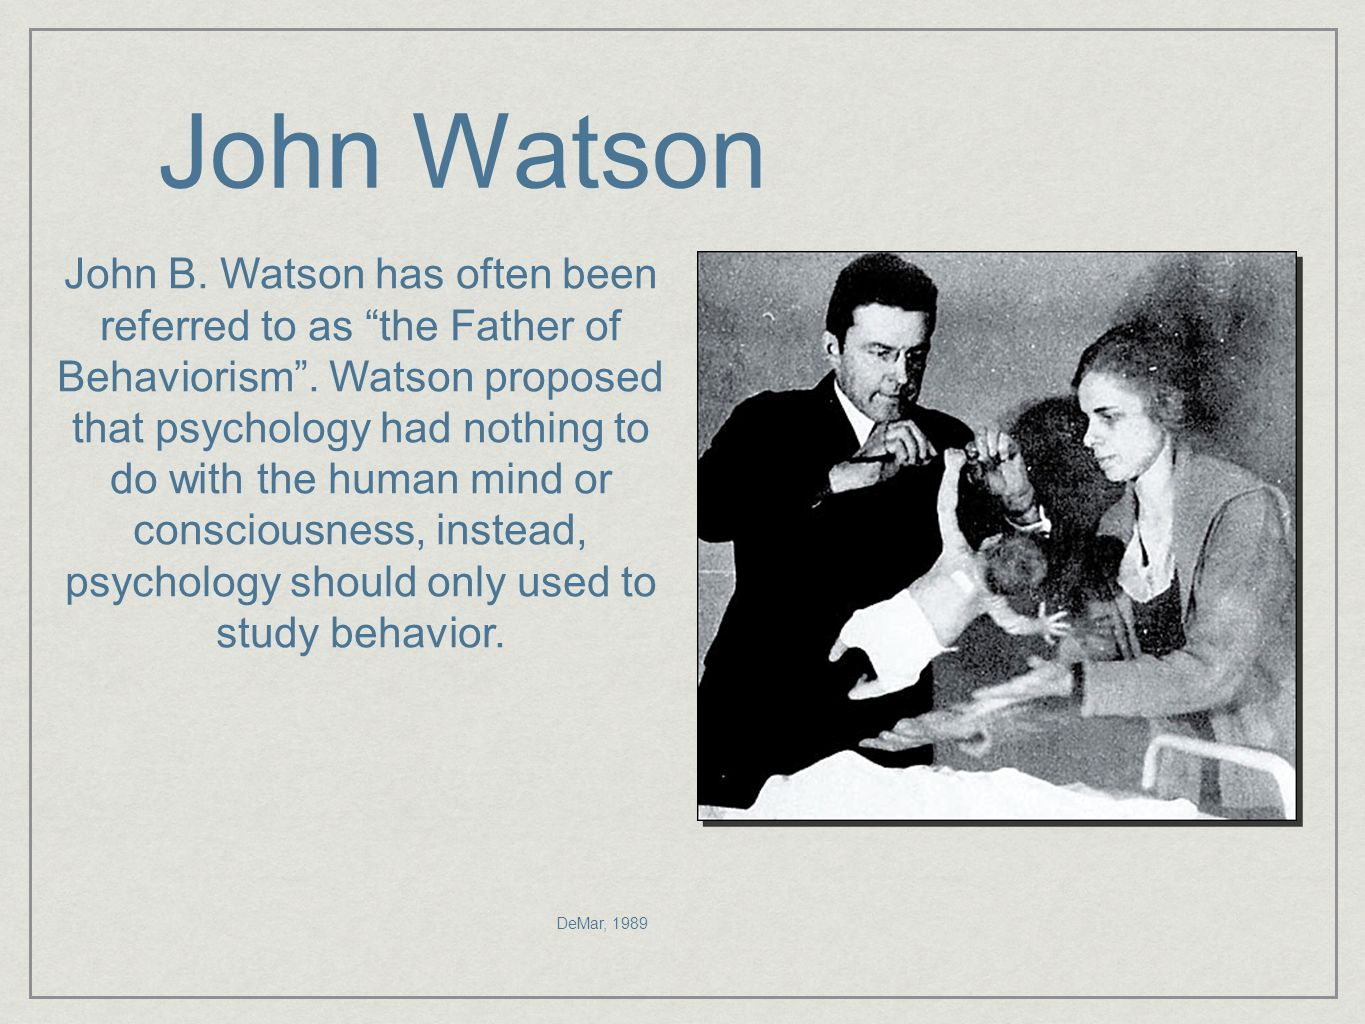 """john broadus watson theory of behaviorism essay A critical analysis of john b watson's original writing: """"behaviorism as a behaviorist views it""""  john broadus watson is credited  for this reason, watson's theory of behaviorism is hailed by many as a panacea to the scourge of subjectivism and pseudo-science that pervaded his day."""